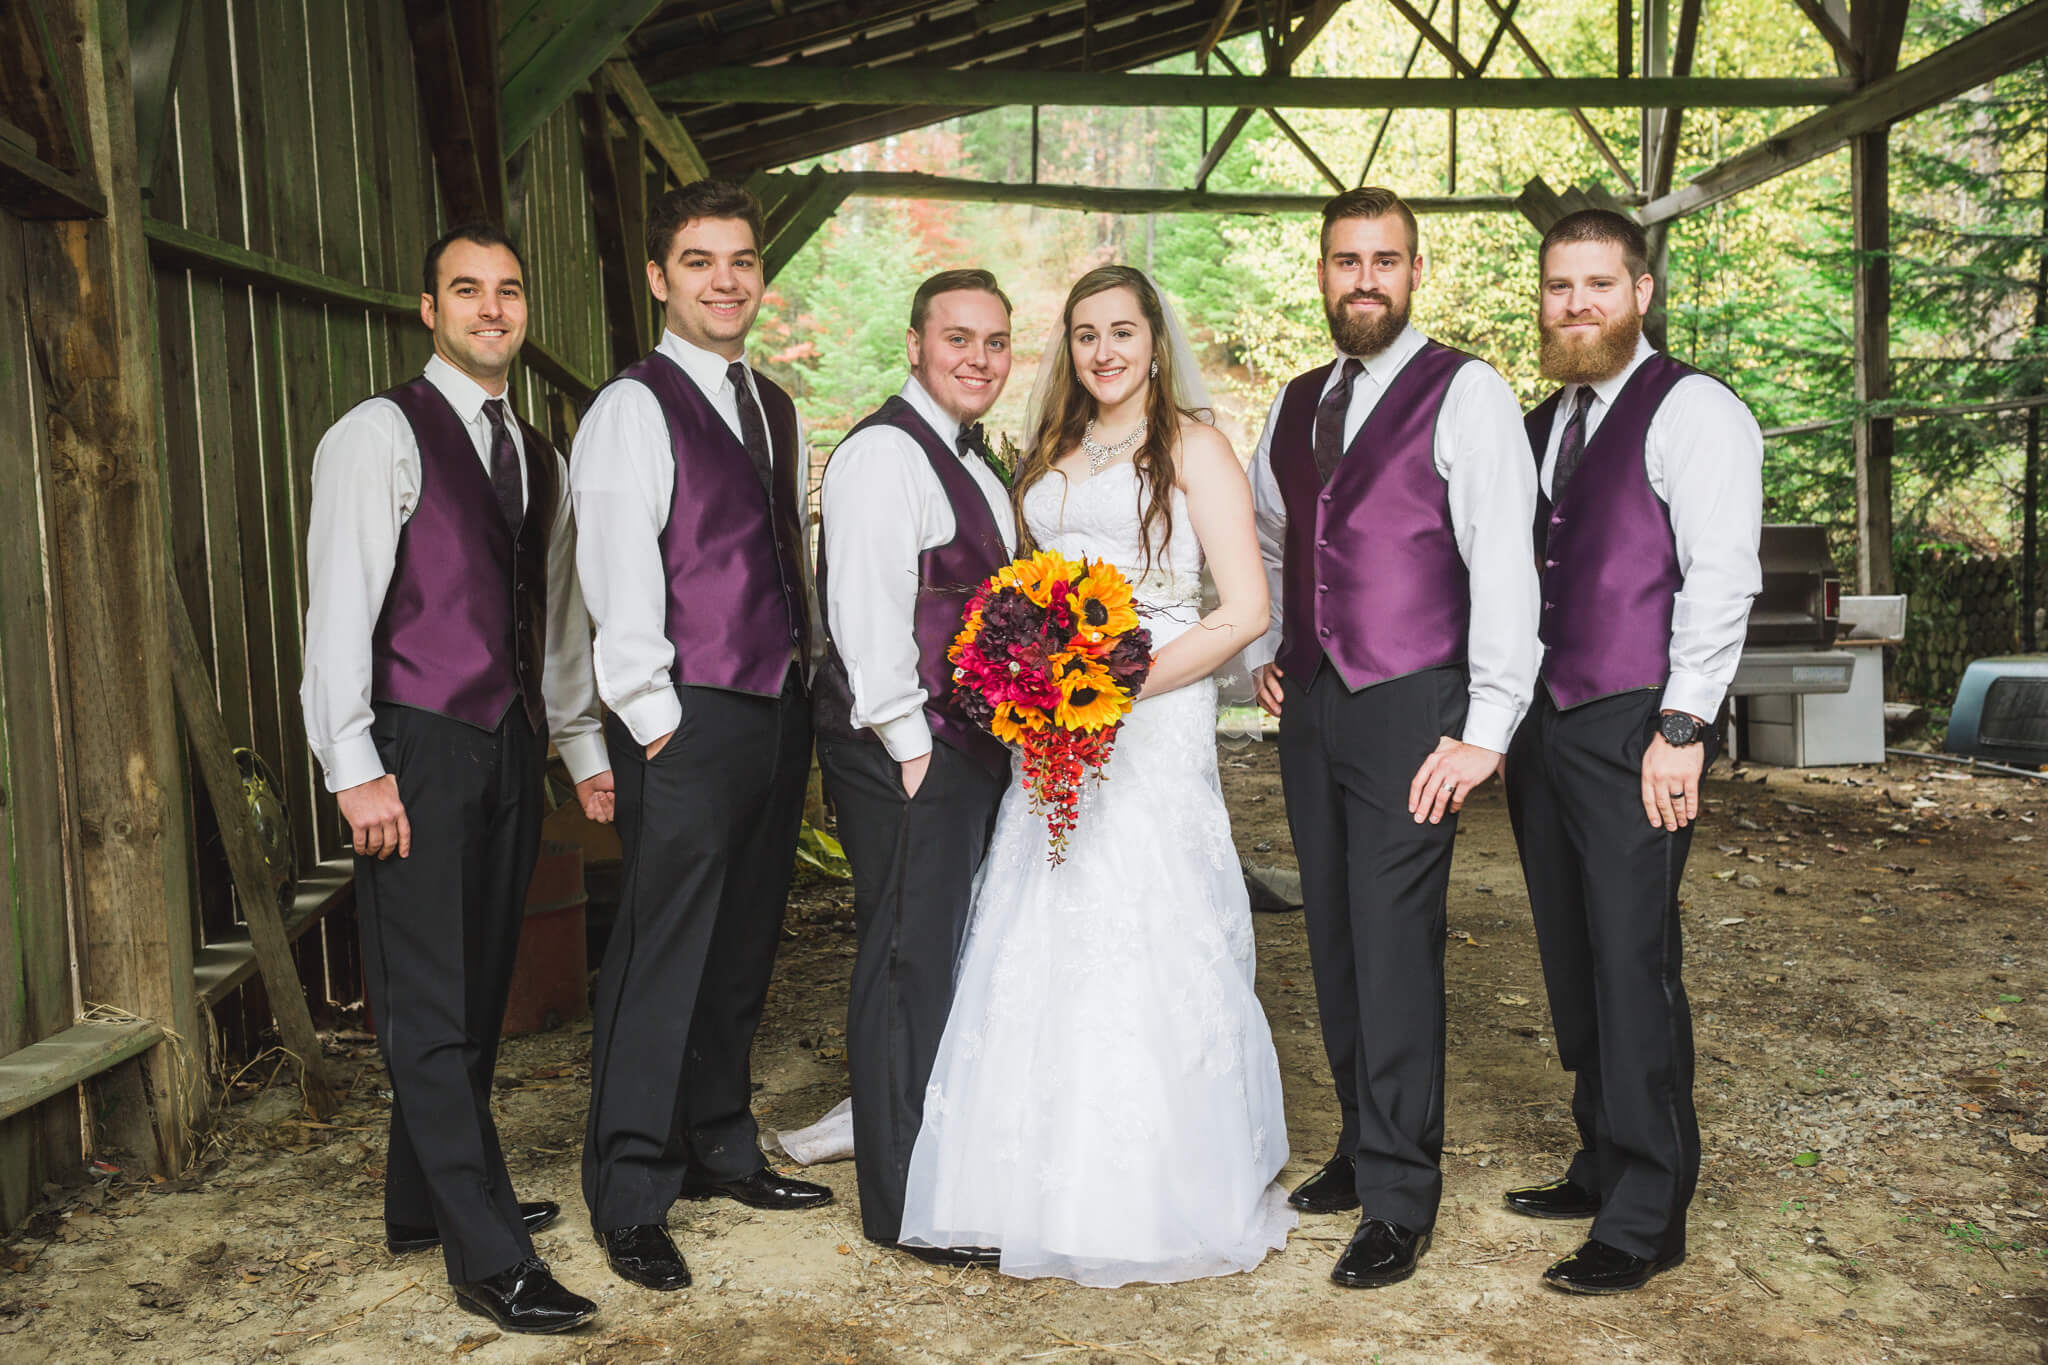 Mitcham's Barn Wedding-95.JPG